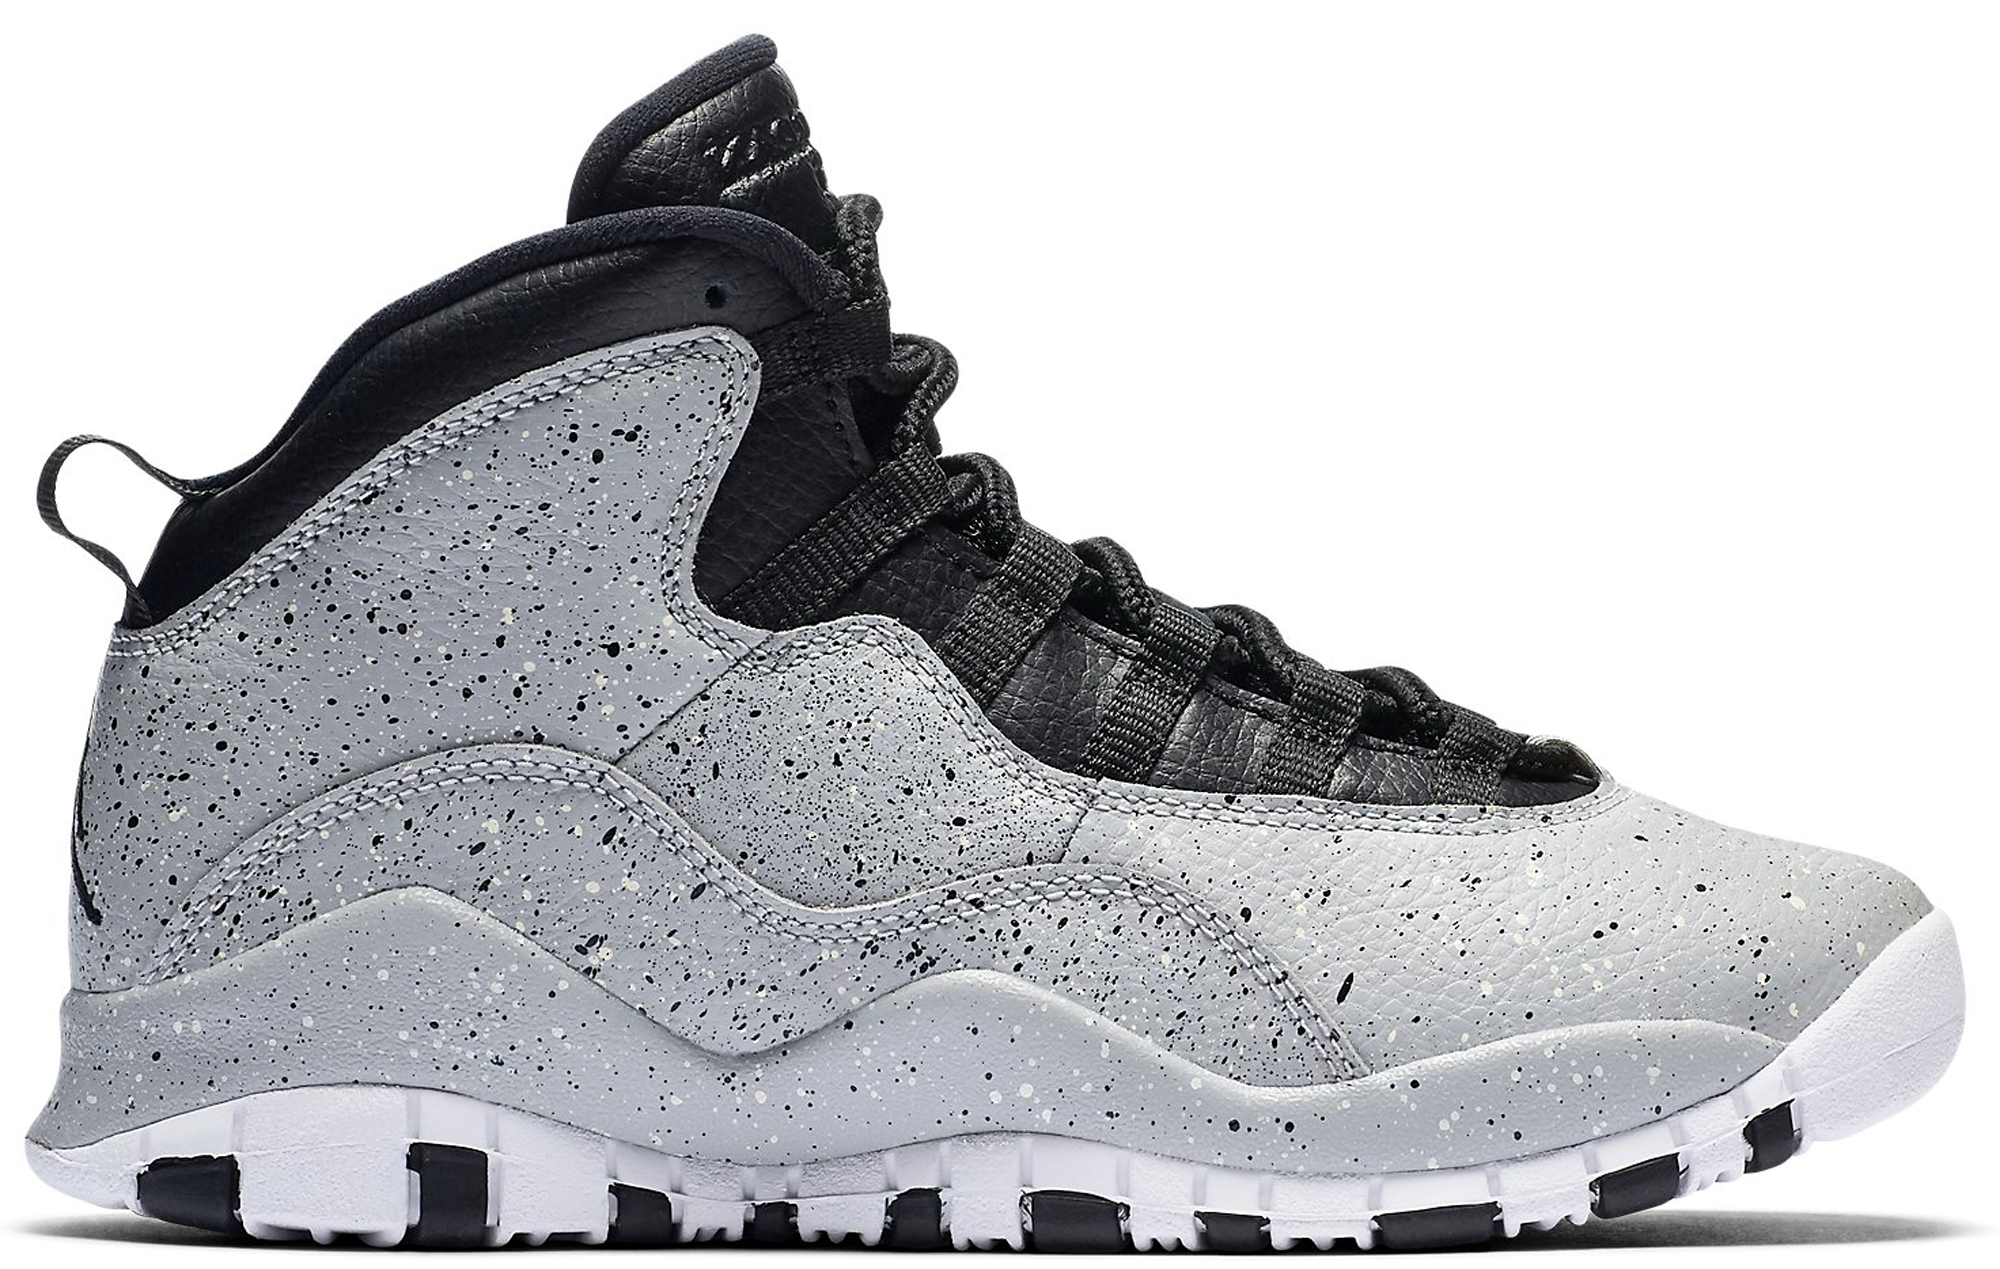 Jordan 10 Retro 